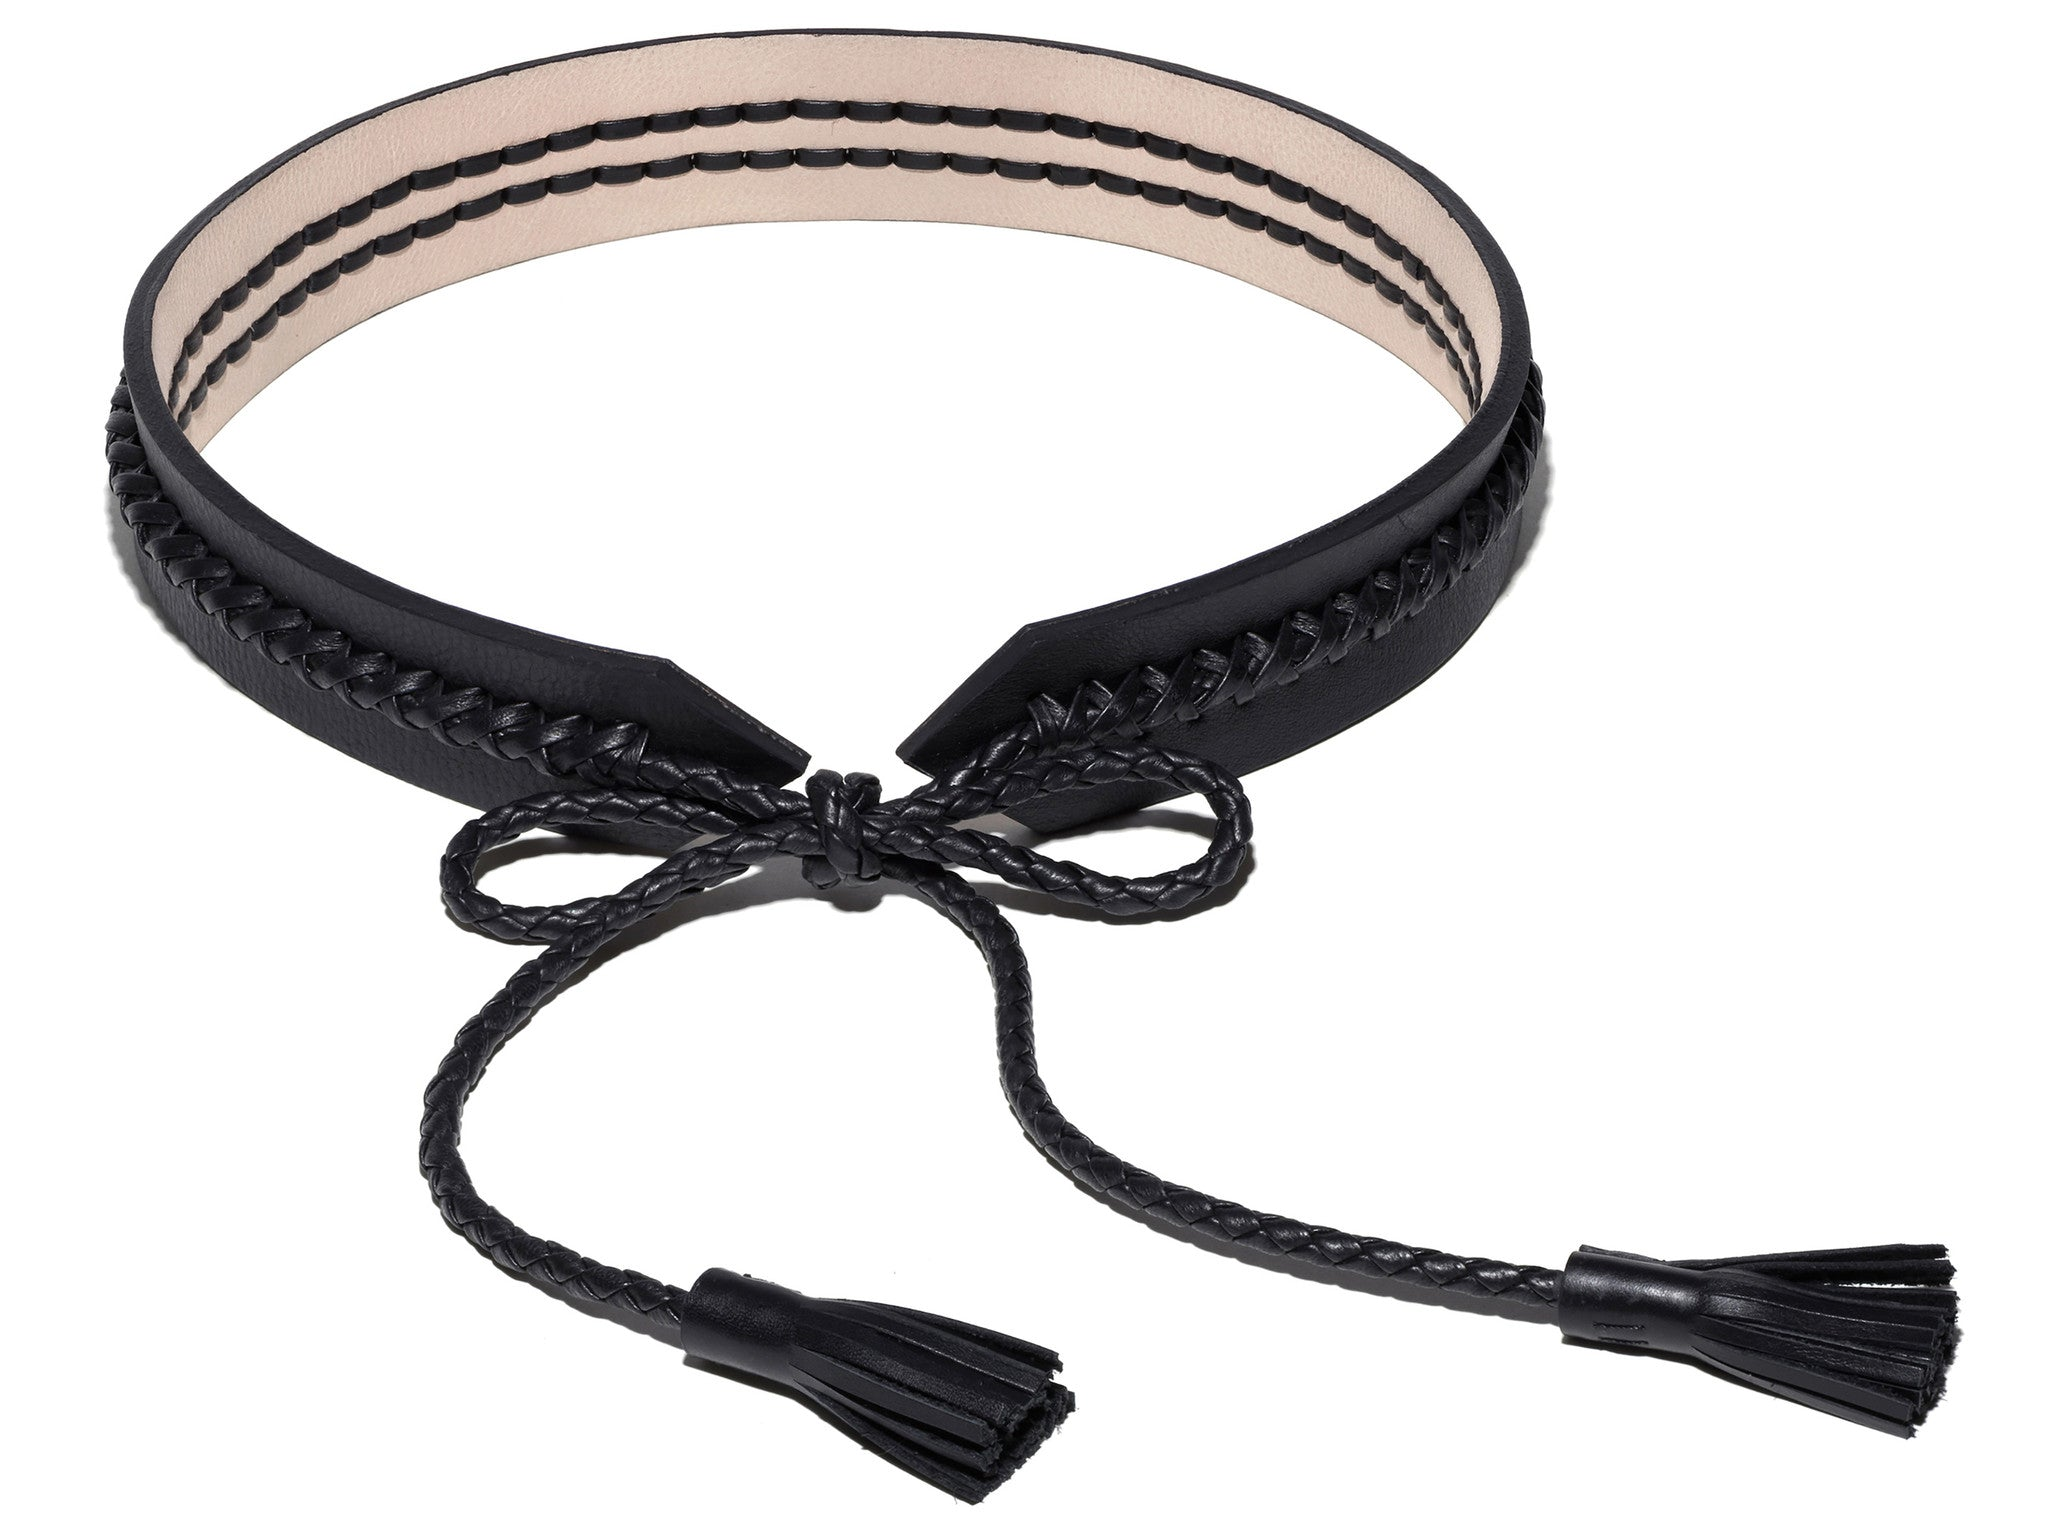 Braided Leather Belt Wendy Nichol Designer Handmade in NYC New York City Braided X Thick Custom black Natural Tan Pink Leather Tassel Bow Belt Bondage S&M Dominatrix